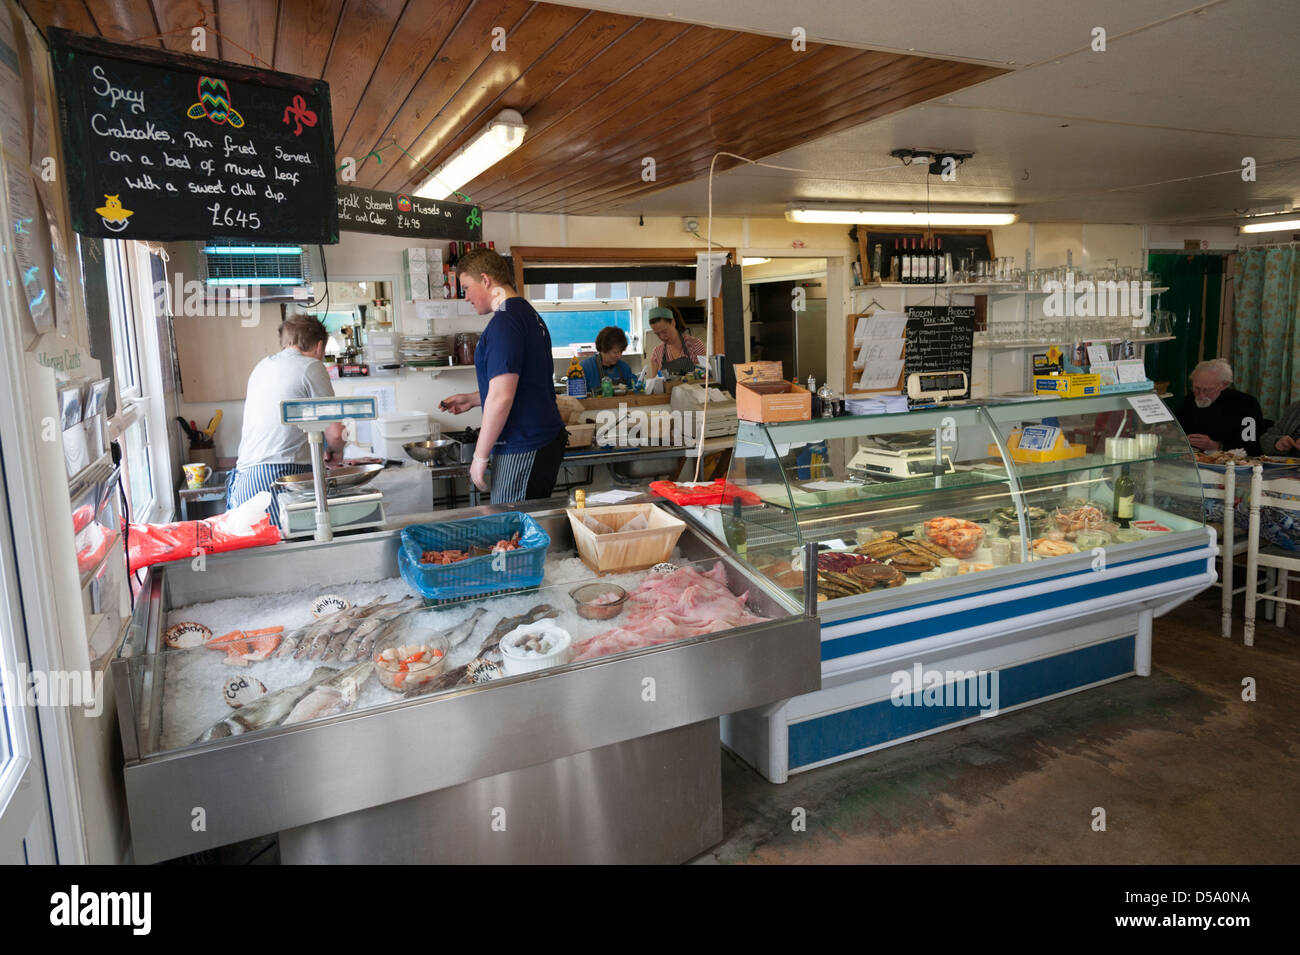 Inside The Company Shed Fish Shop Cafe And Restaurant